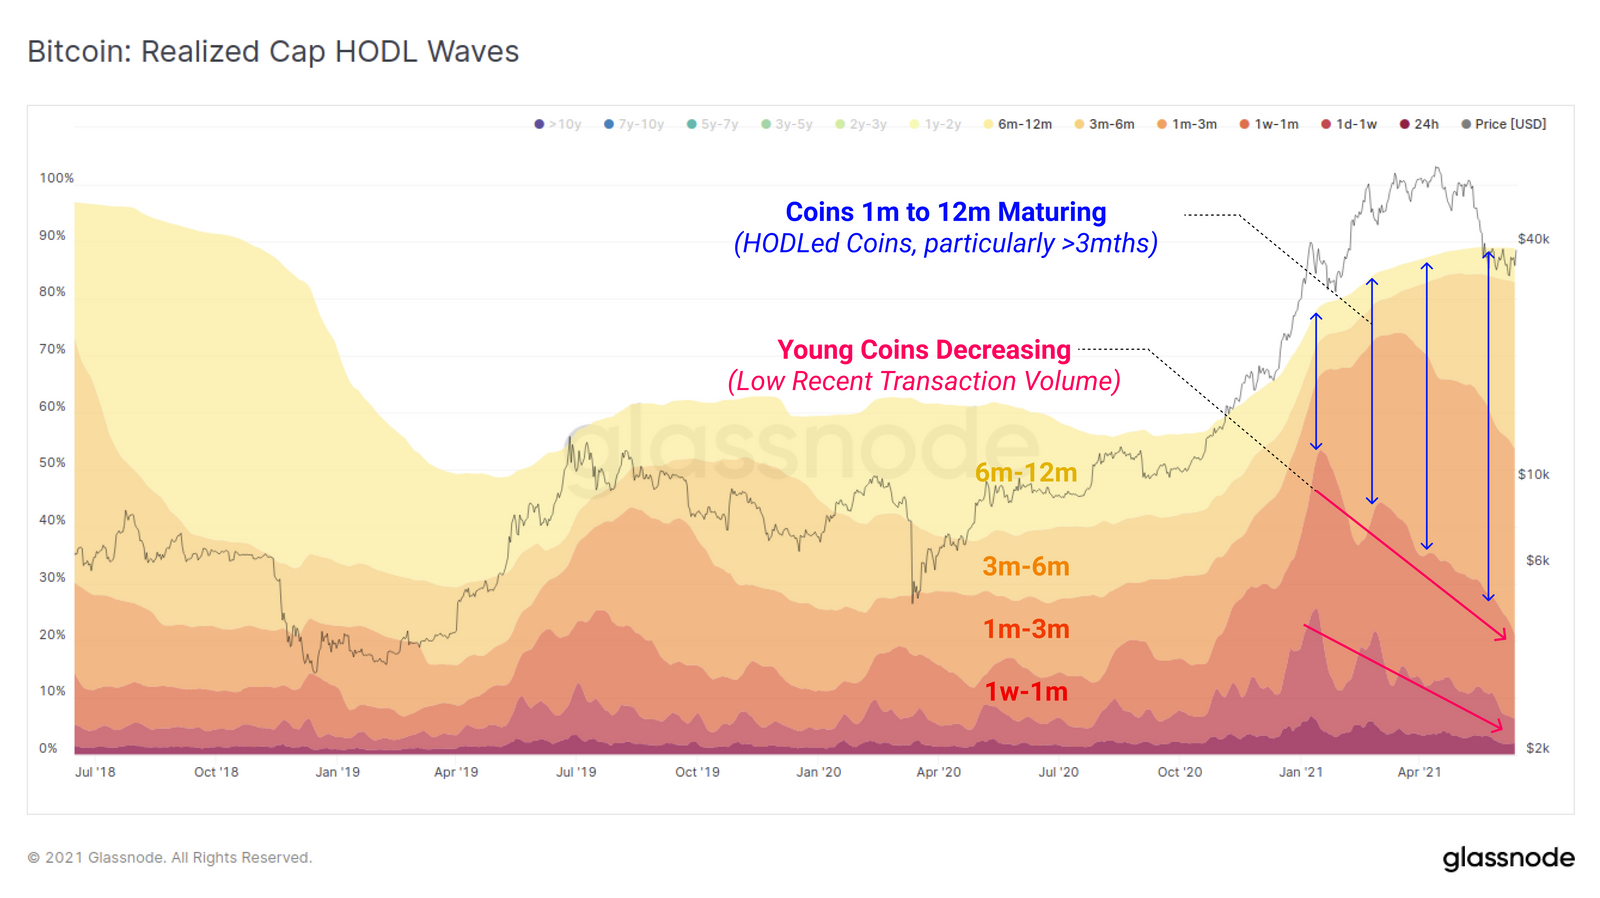 New Bitcoin bull market hodlers are refusing to sell at $40K, data suggests